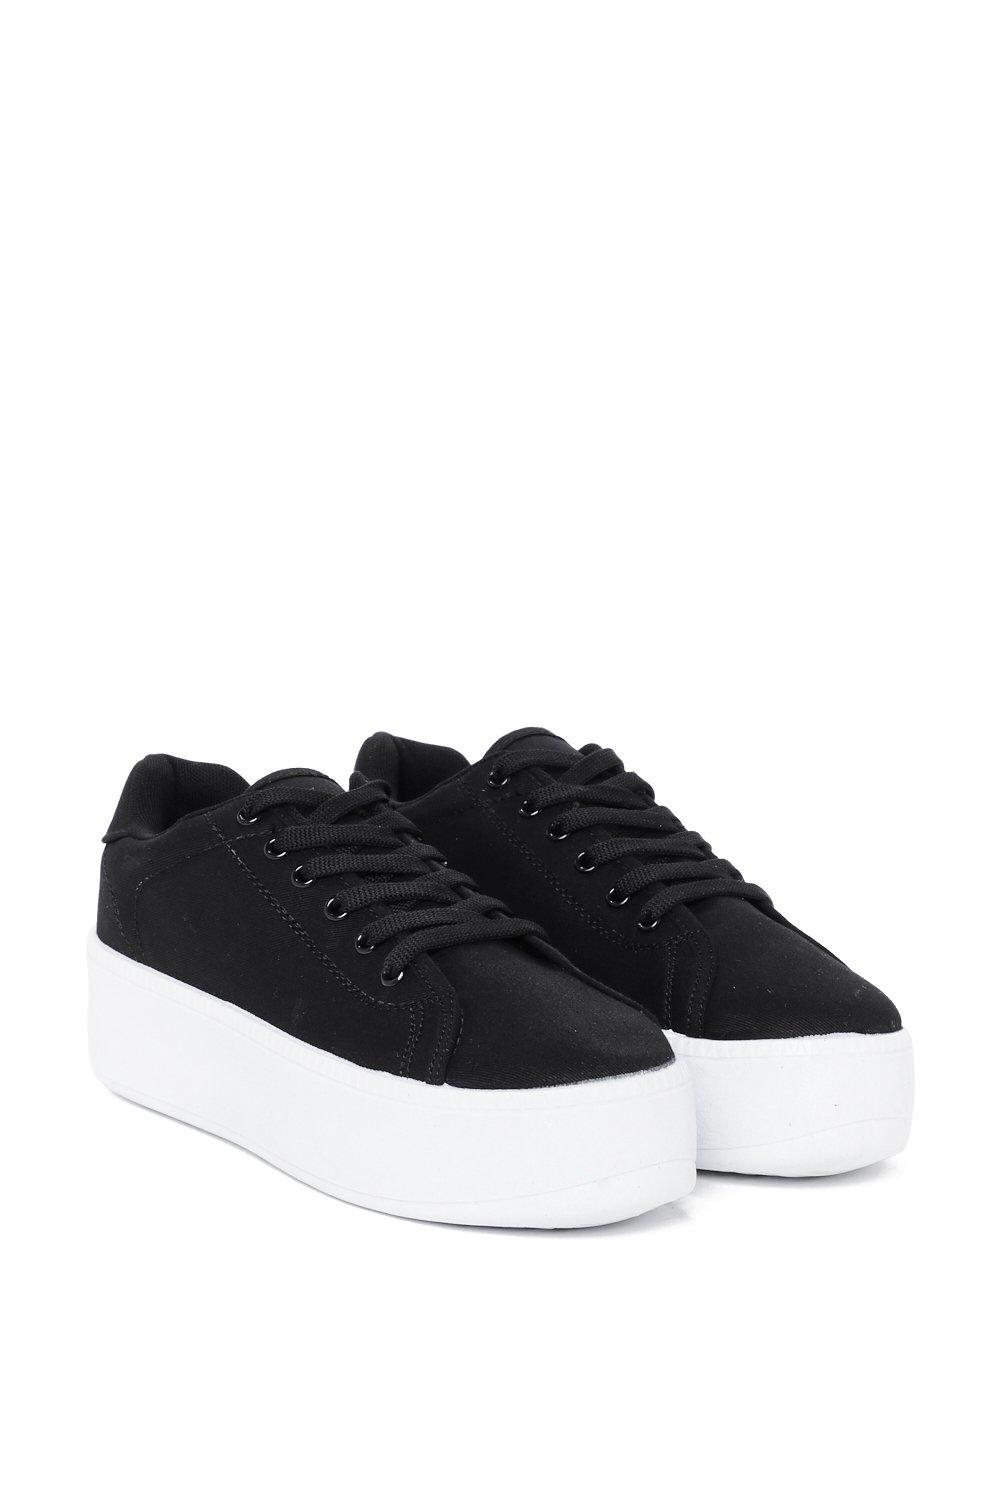 05bf74cfe45 Rise Up Platform Sneaker | Shop Clothes at Nasty Gal!